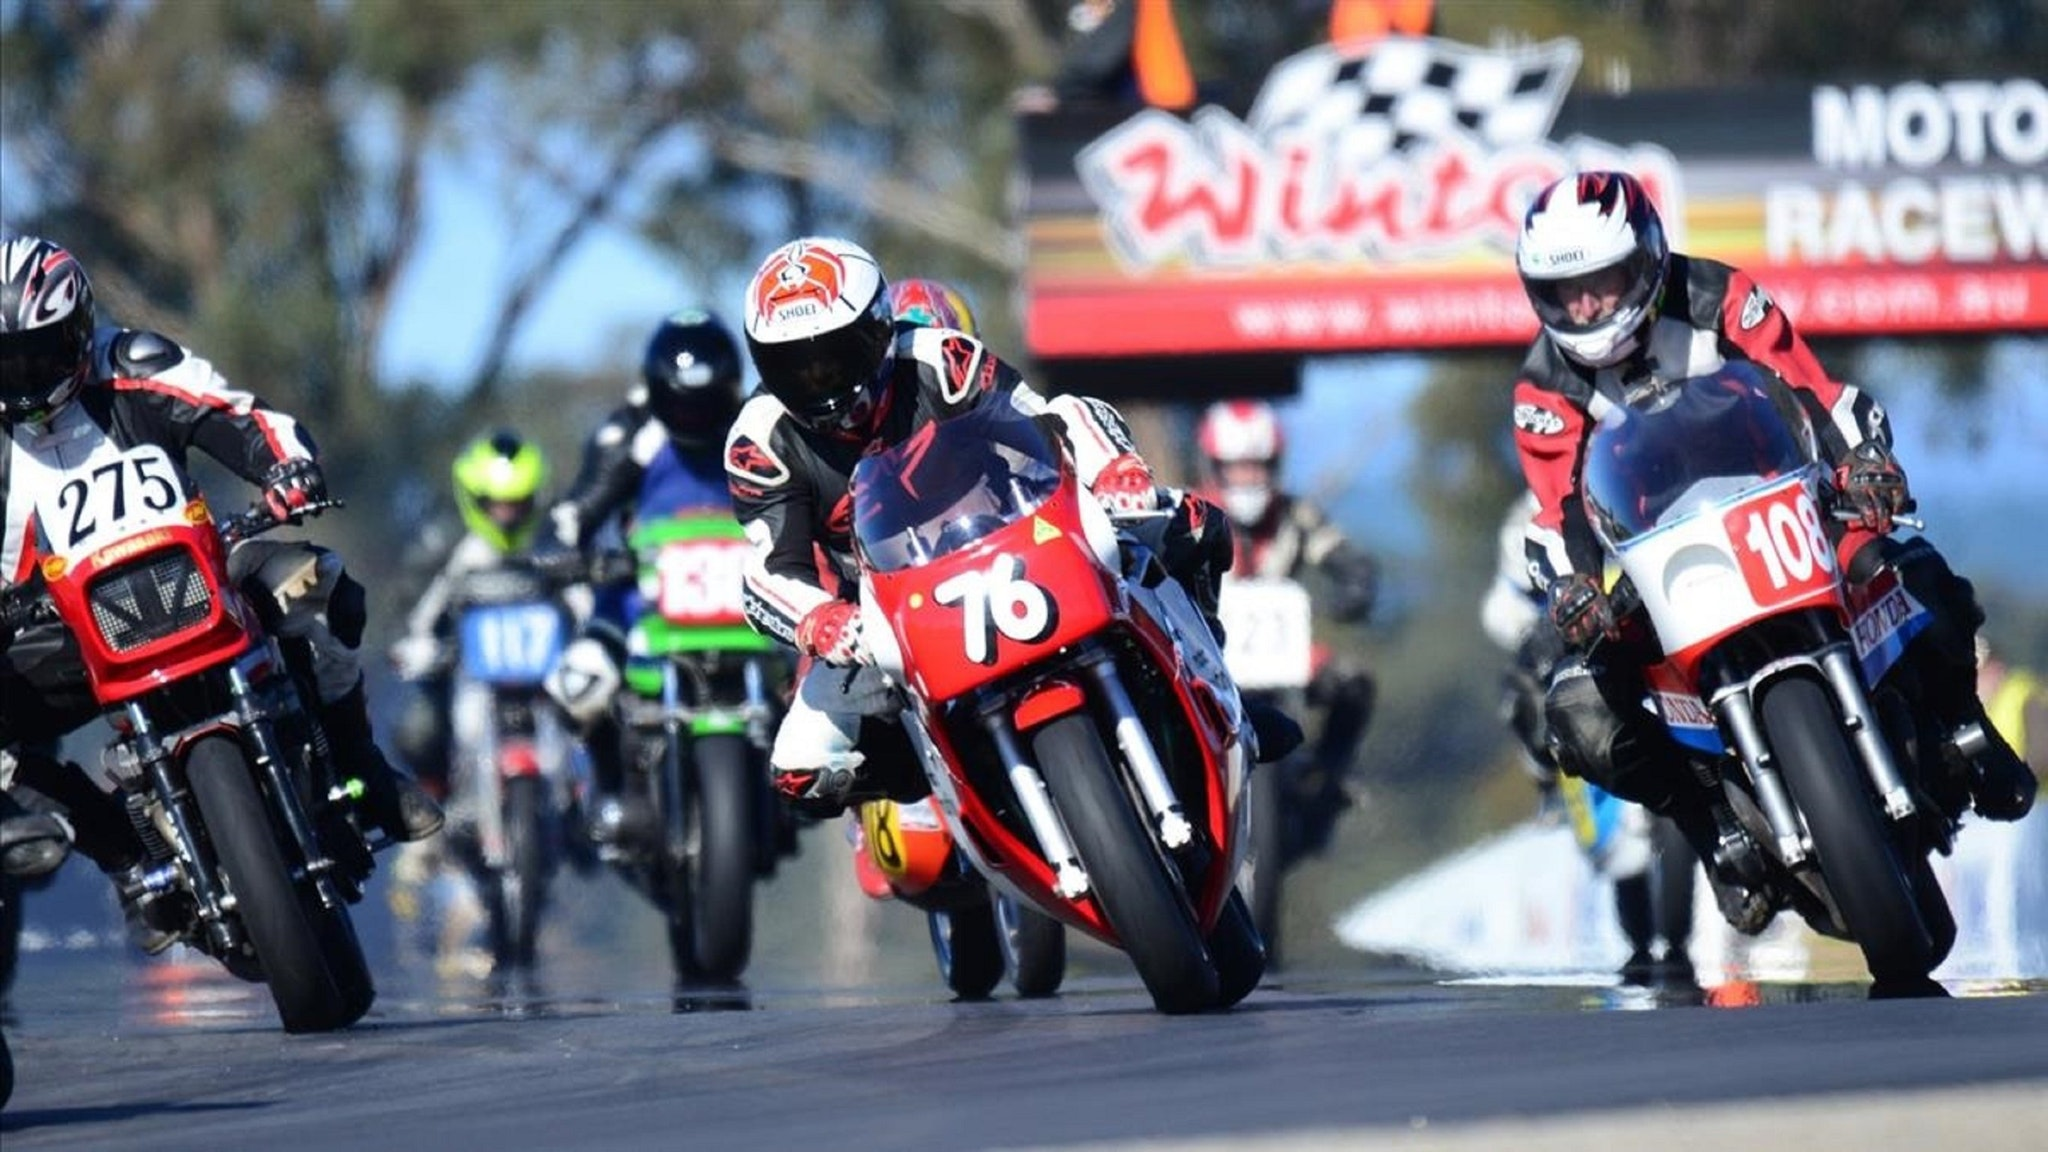 Victorian Road Racing Championships Motorcycles - Round 1